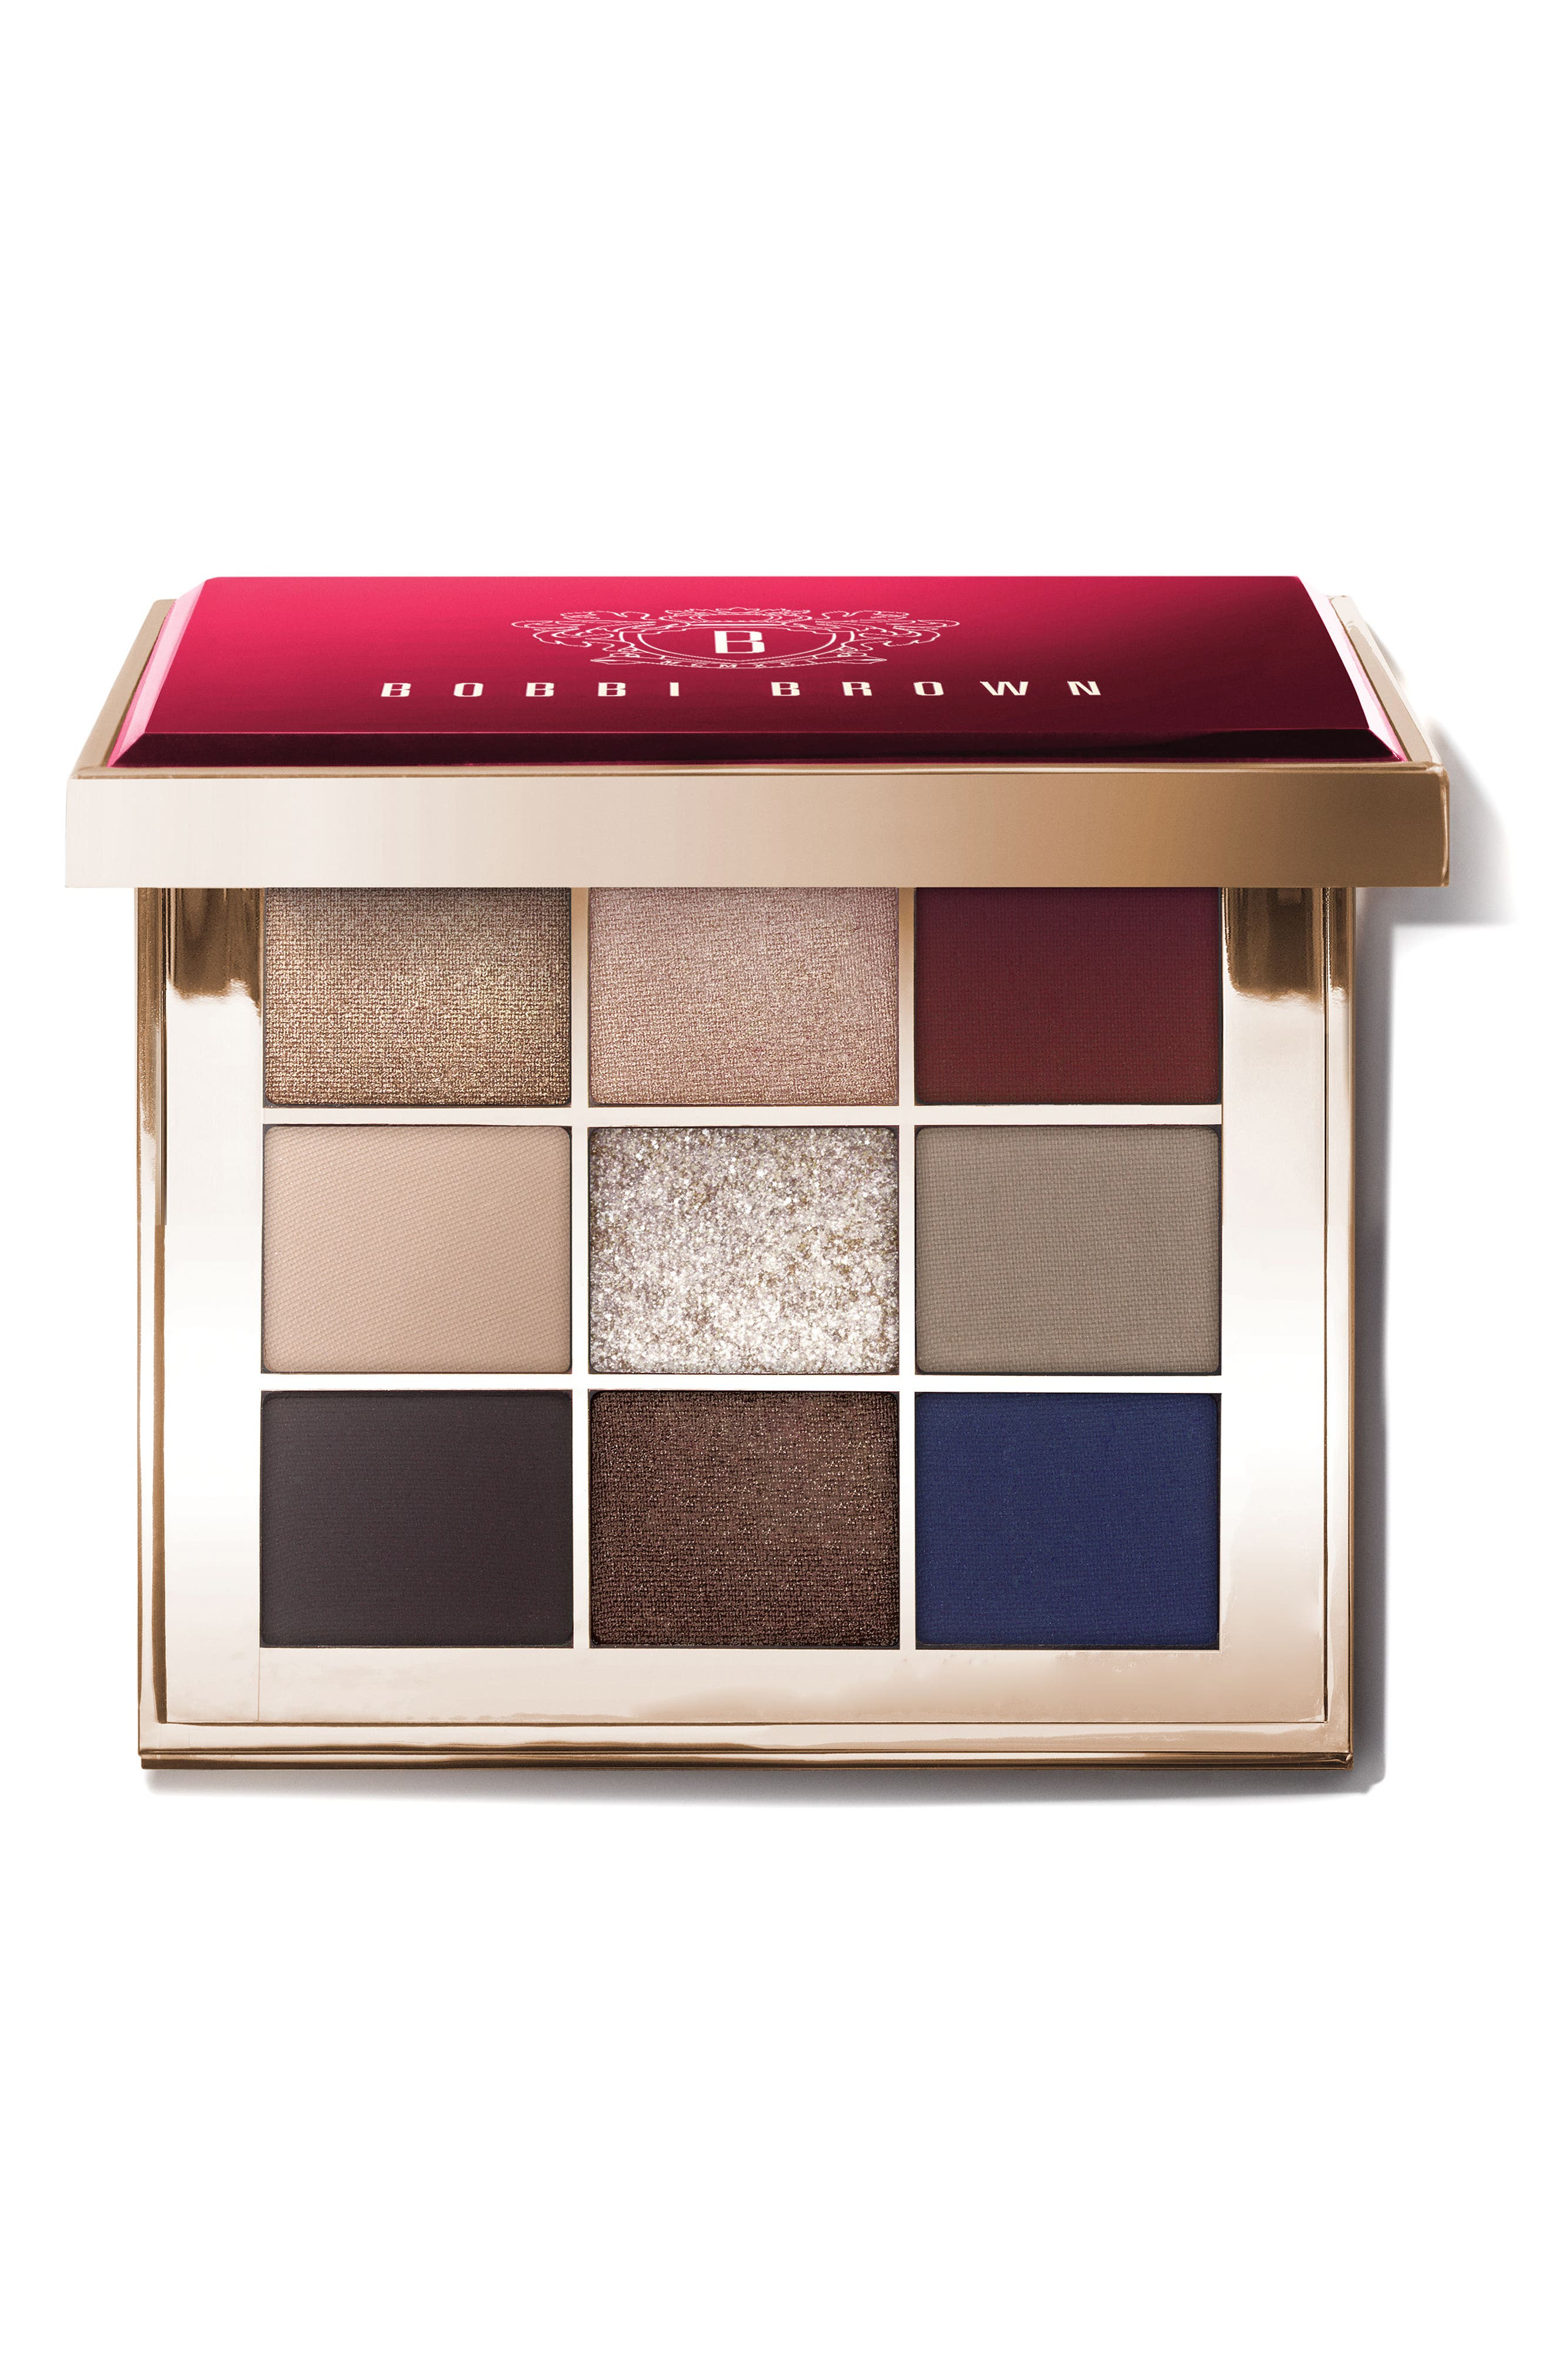 Caviar & Rubies Eyeshadow Palette,                         Main,                         color, No Color